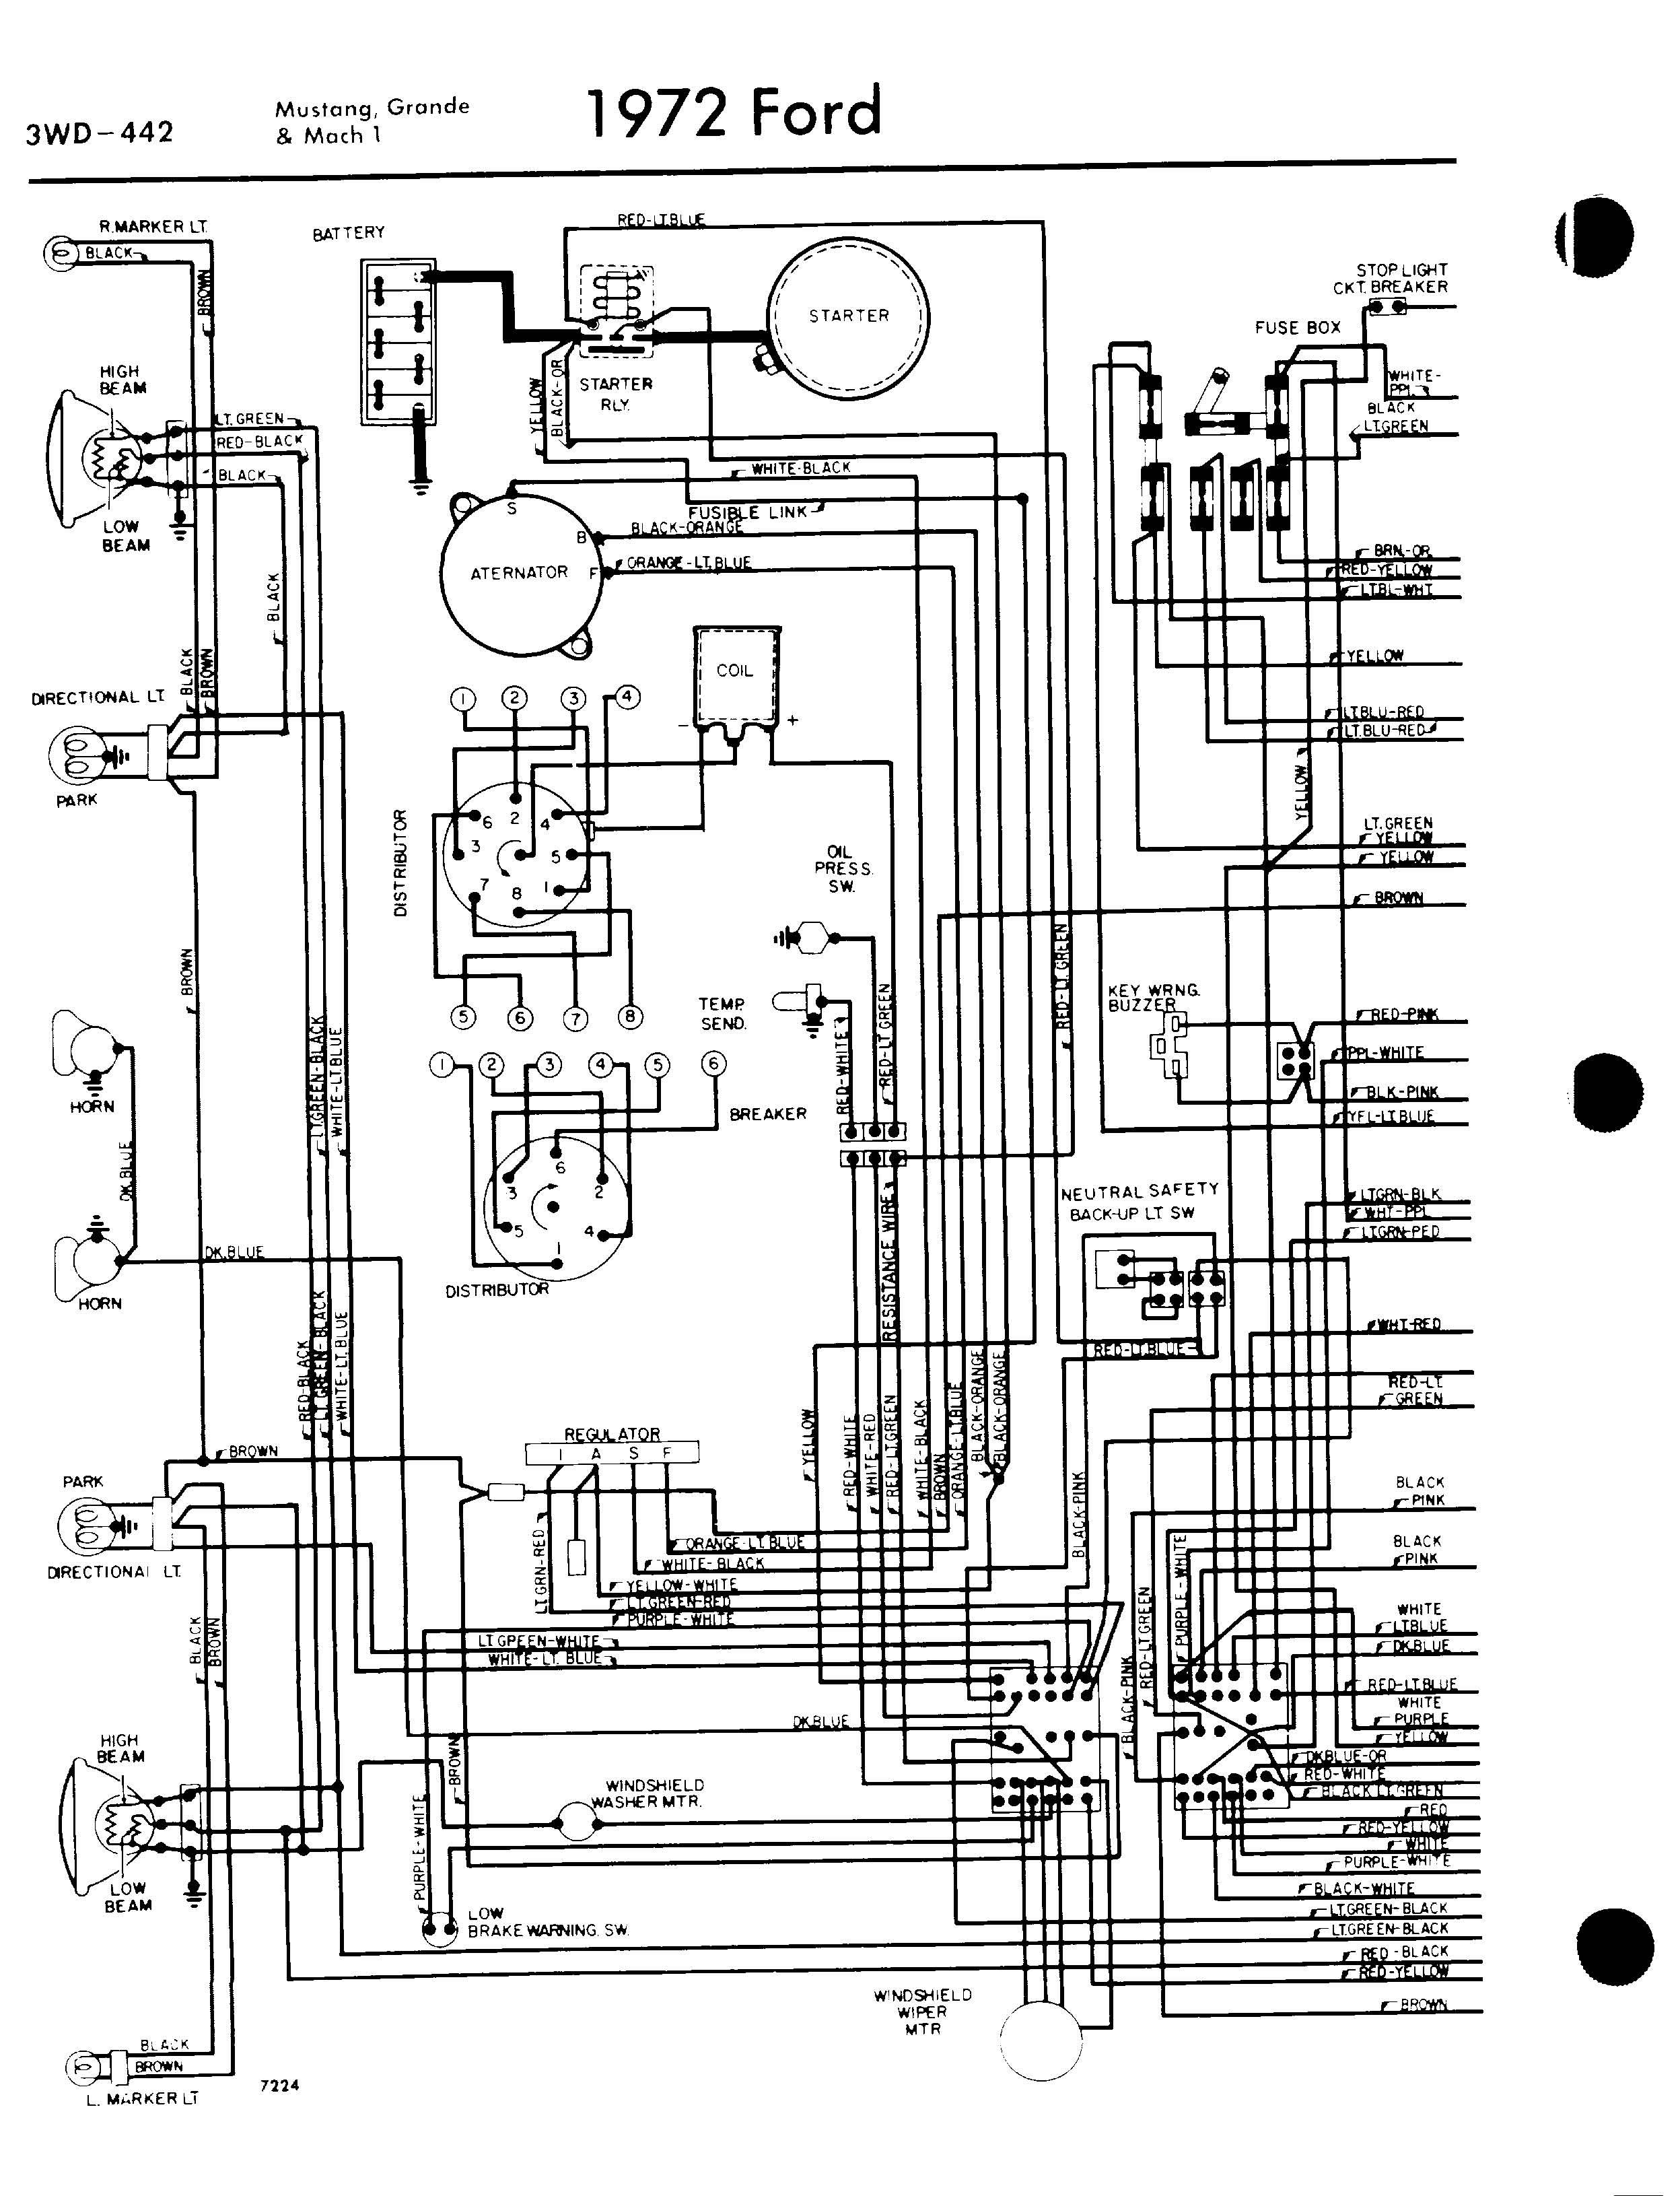 71af7a58e095e6a7716b32f1b23e8bd2 72 mach1 alternator wire harness diagram yahoo search results Ford Alternator Wiring Diagram at mifinder.co